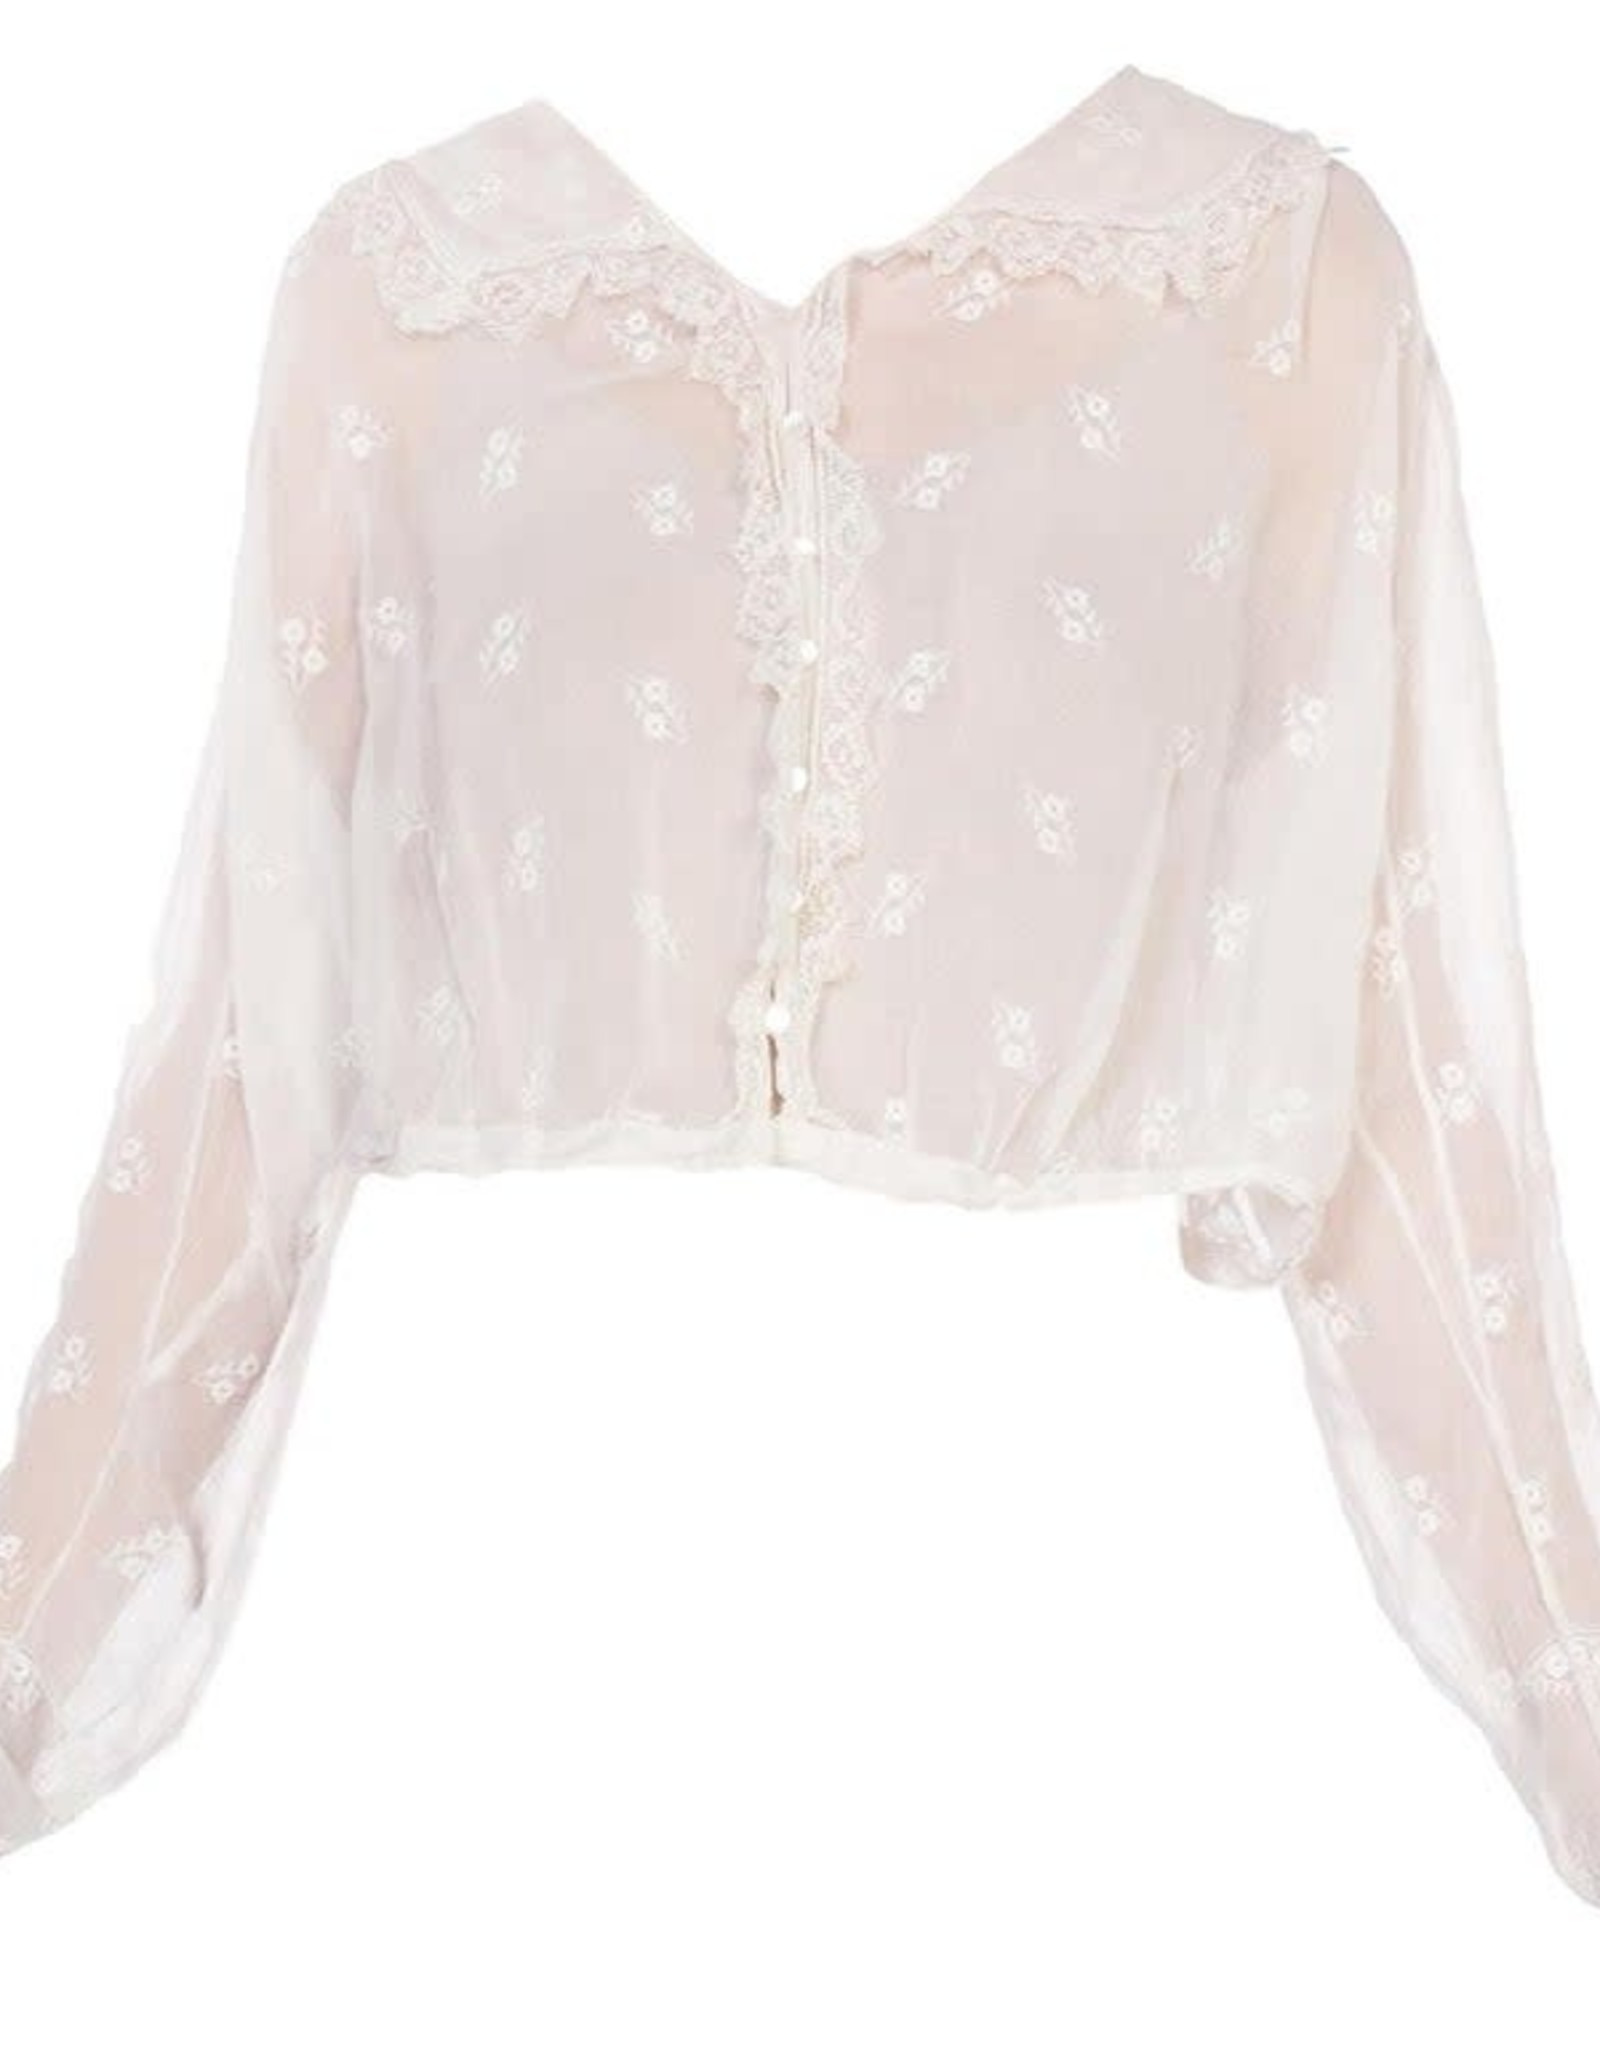 Wyld Blue Vintage Edwardian White Cotton Voile Floral Embroidered Button Front Suffragette Blouse with Lace Trim